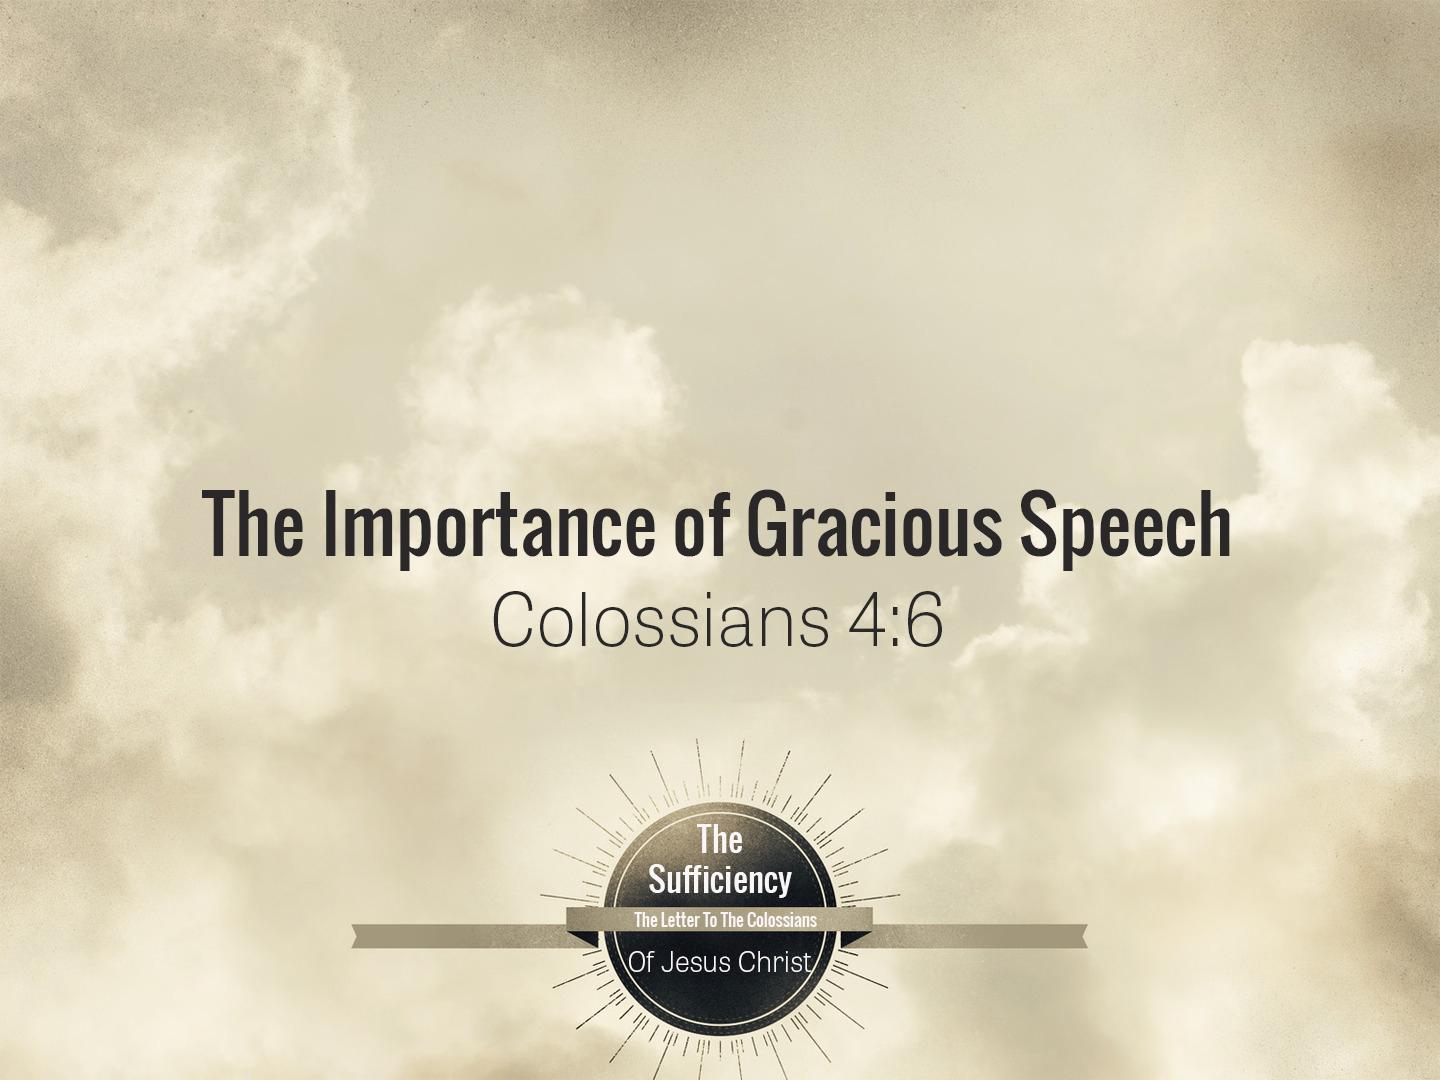 You are currently viewing Colossians 4v6 The Importance of Gracious Speech